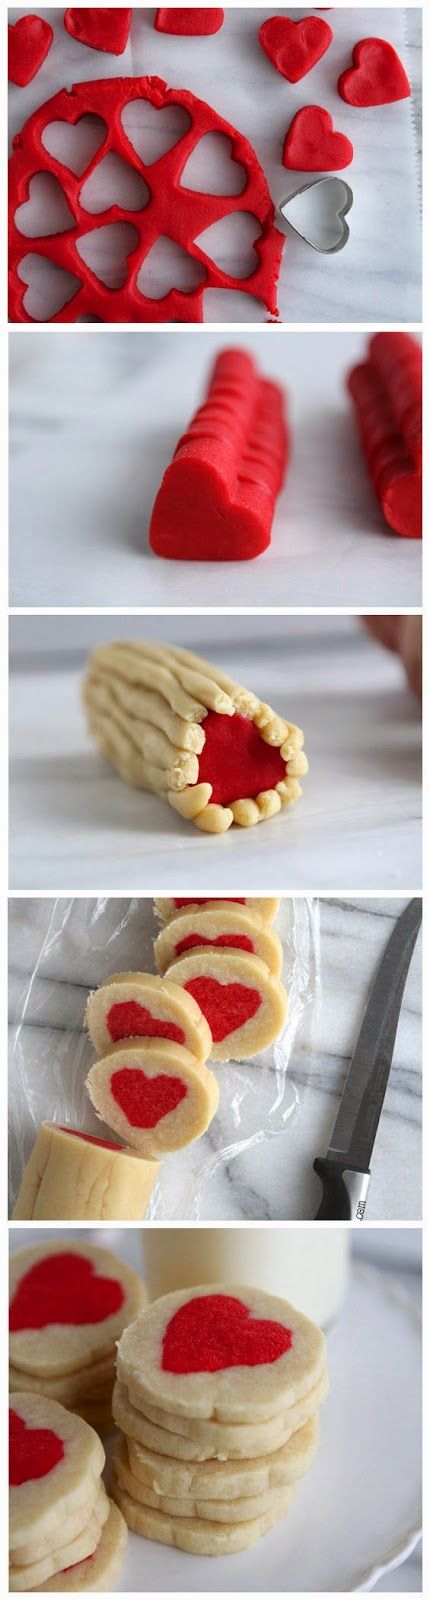 Slice n' Bake Heart Cookies ~ Method works for any shape!